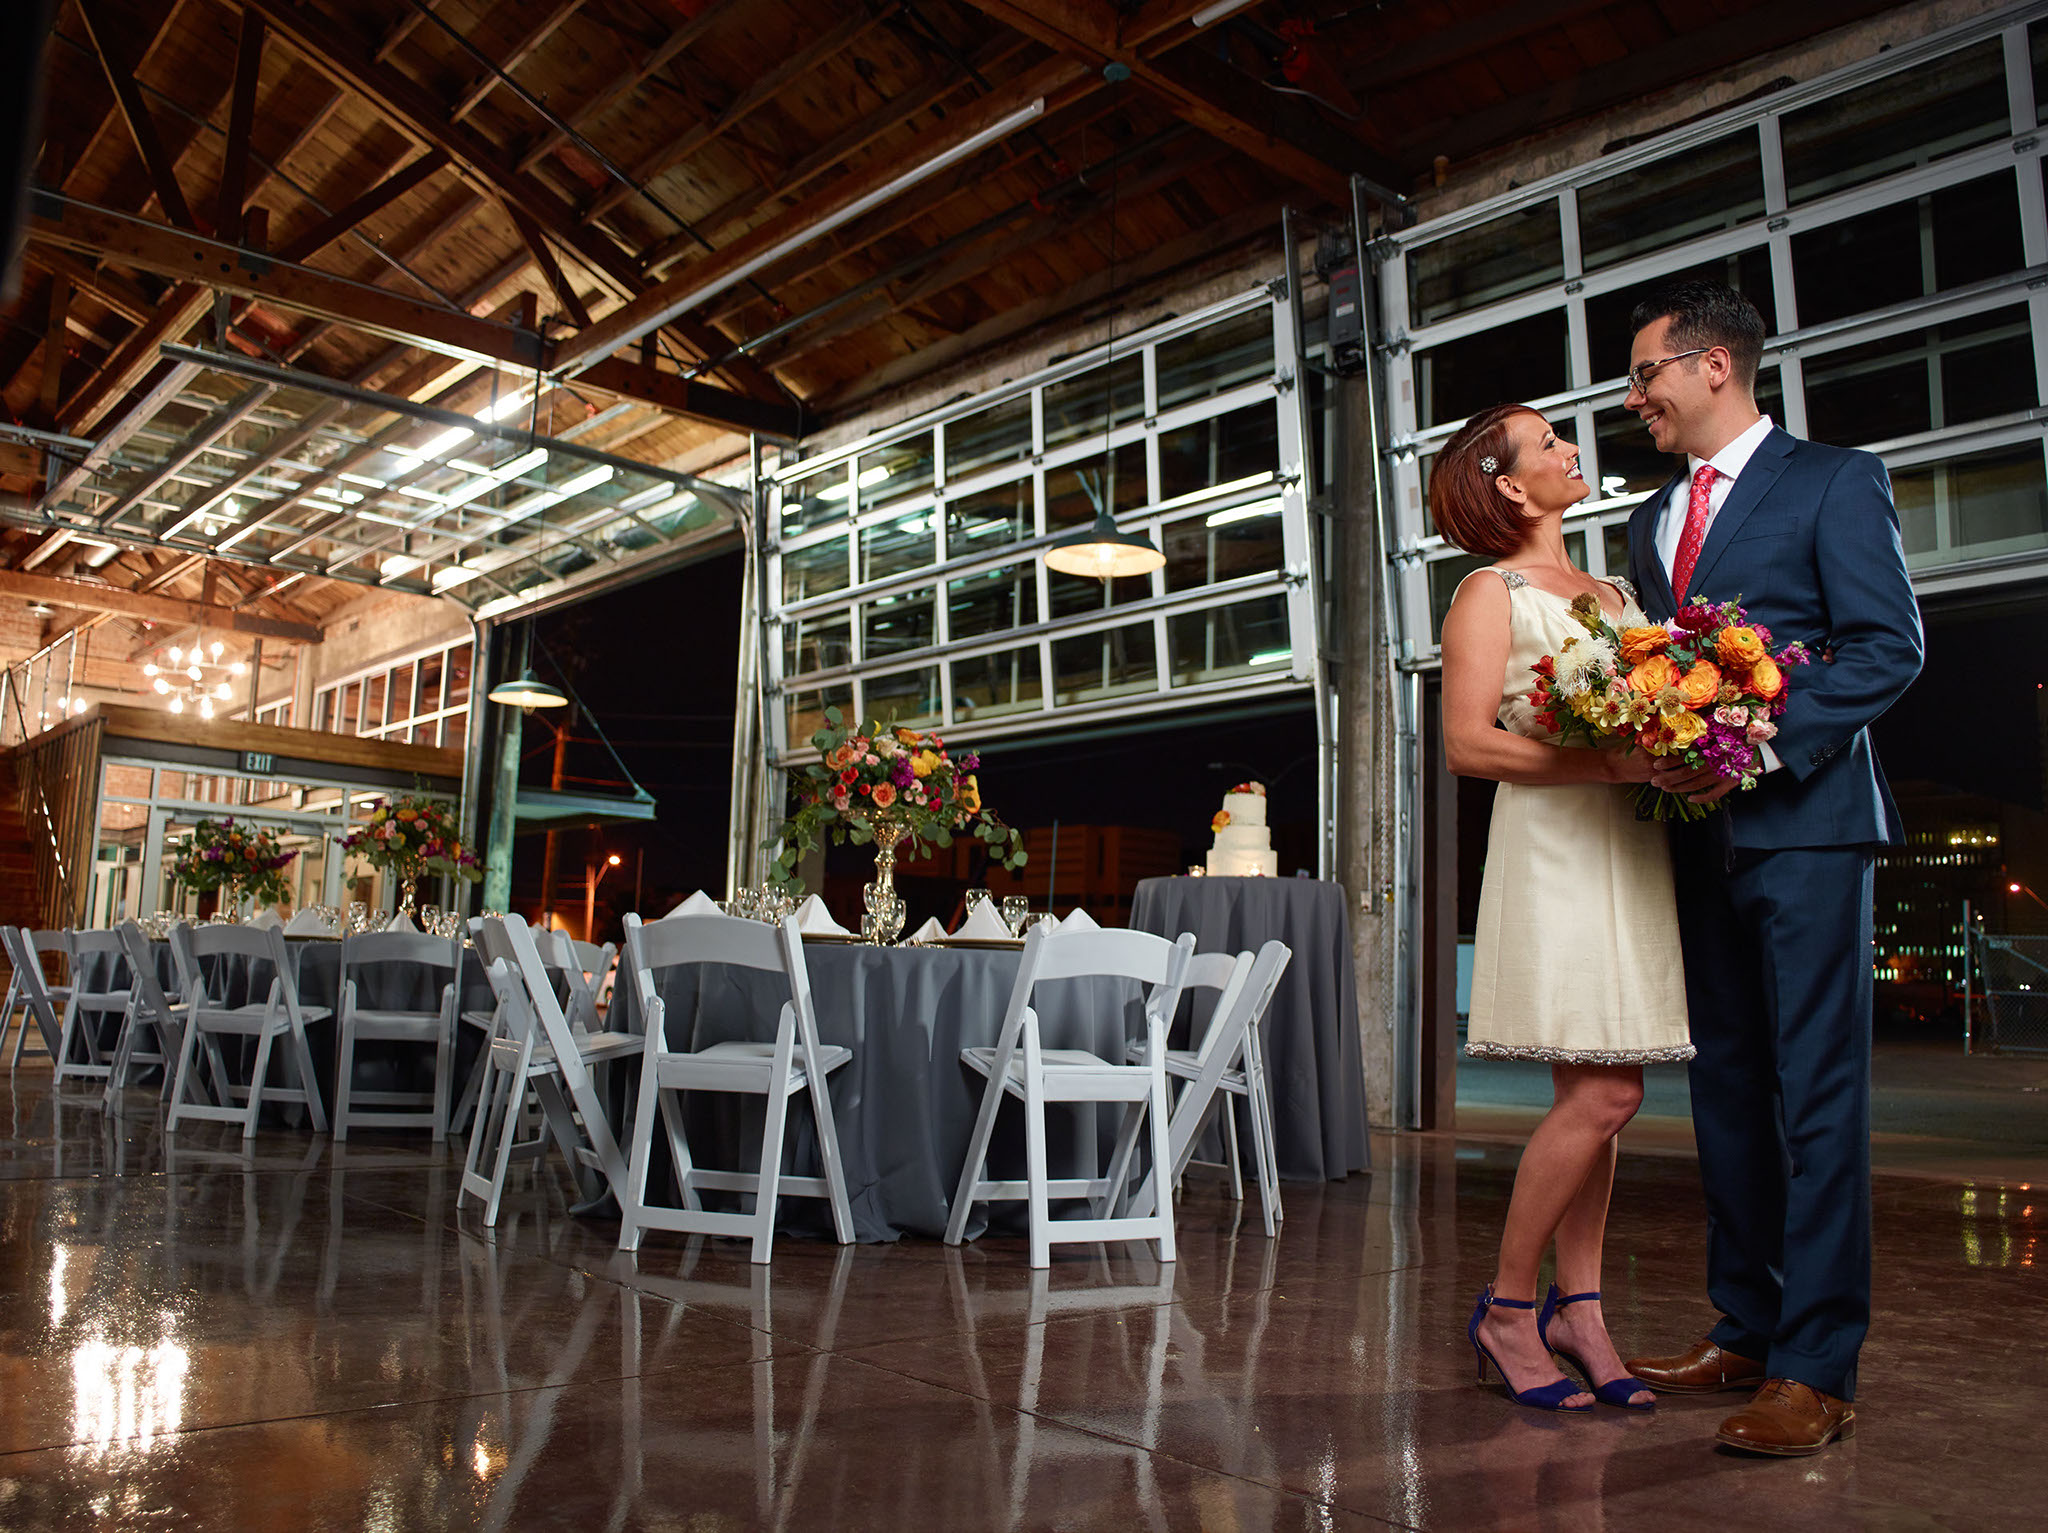 Best wedding venues in downtowns warehouse district downtown the vintage 45 junglespirit Gallery